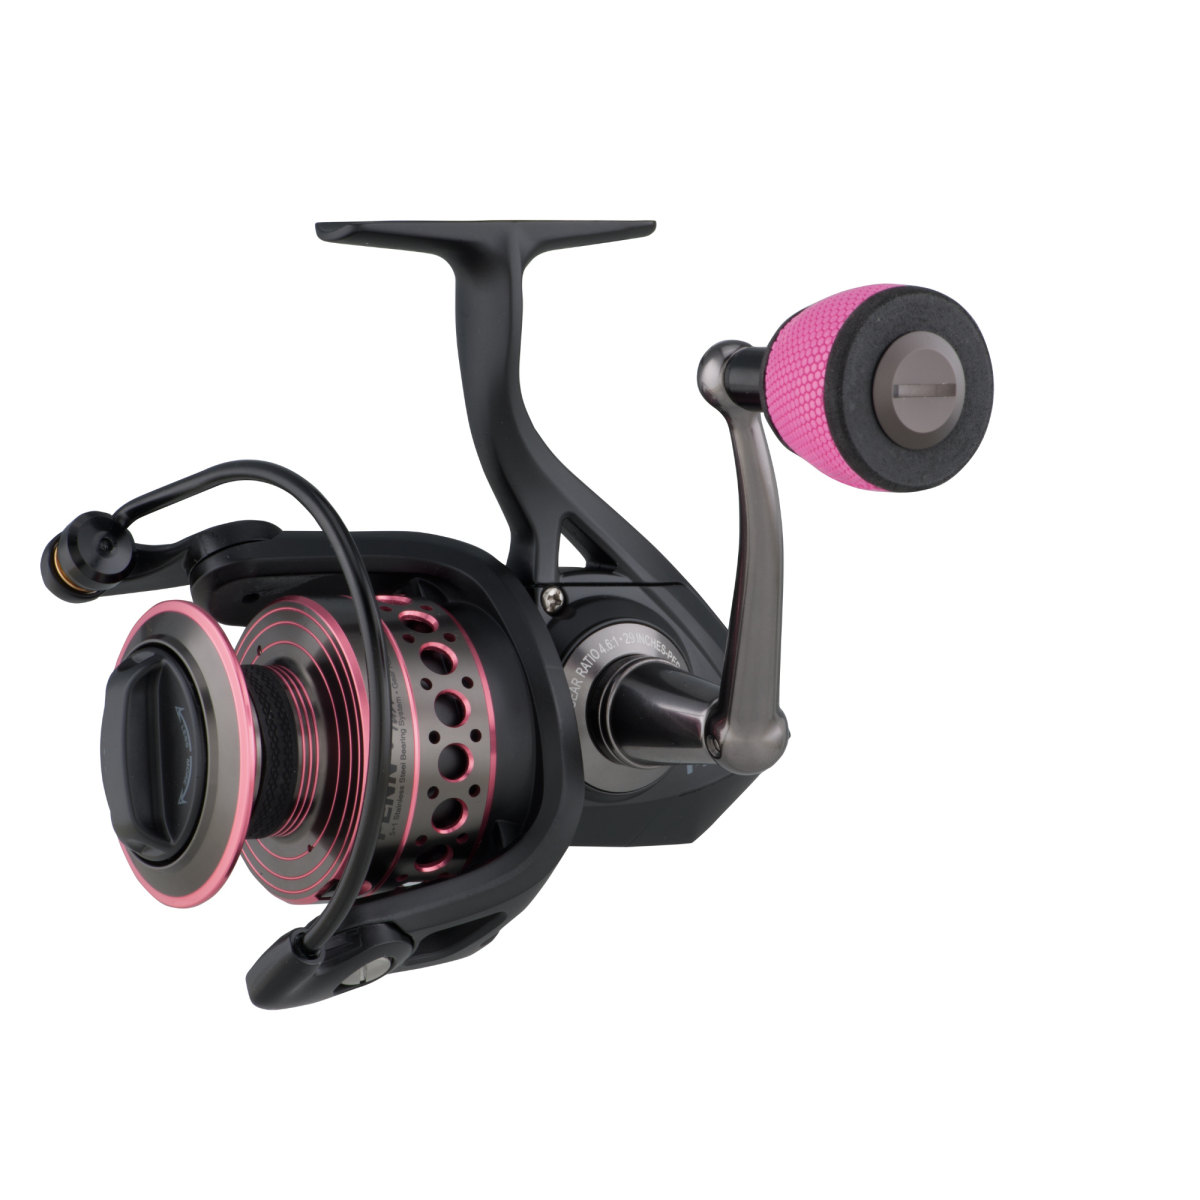 Penn PAS5000 Passion Spinning Reel